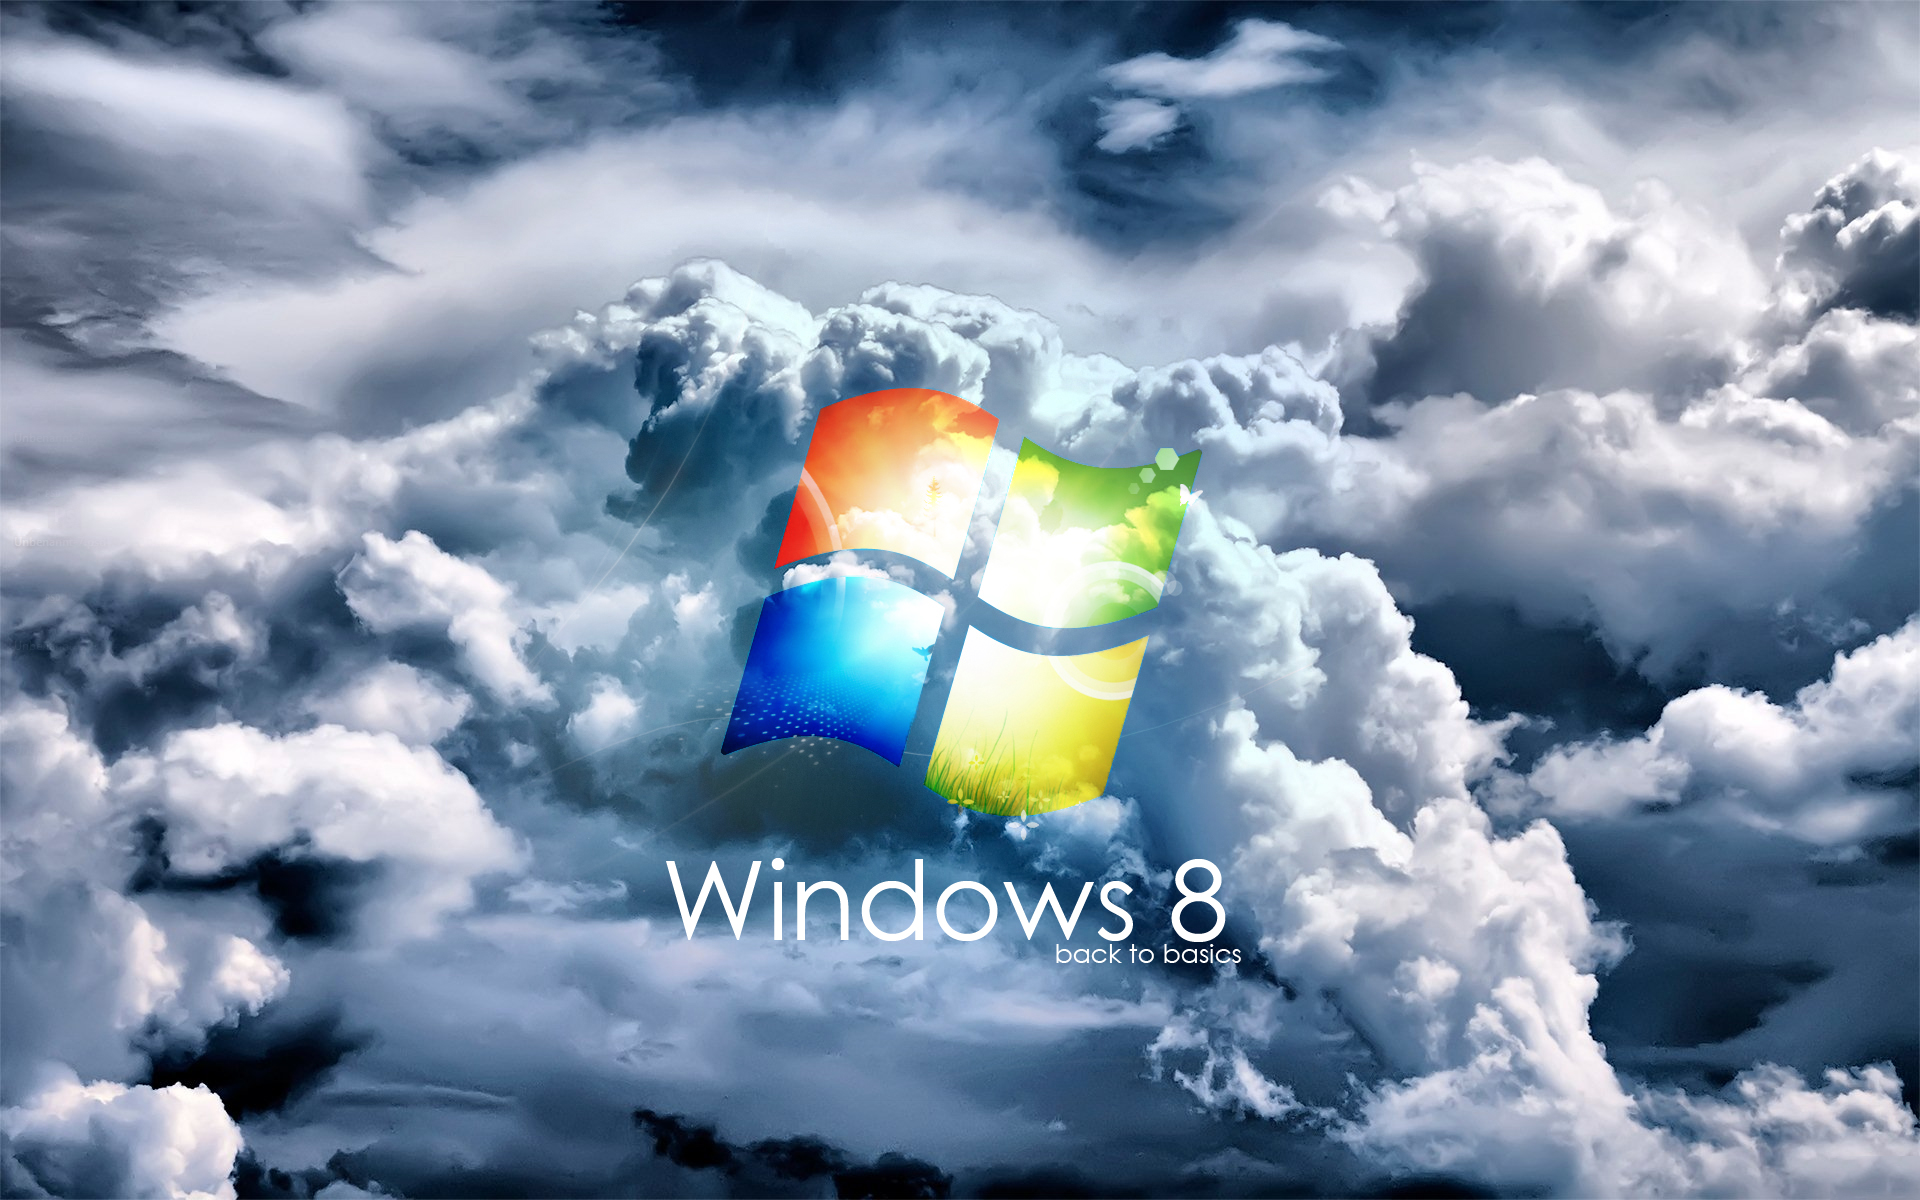 Windows 8 Wallpapers Download 1920x1200